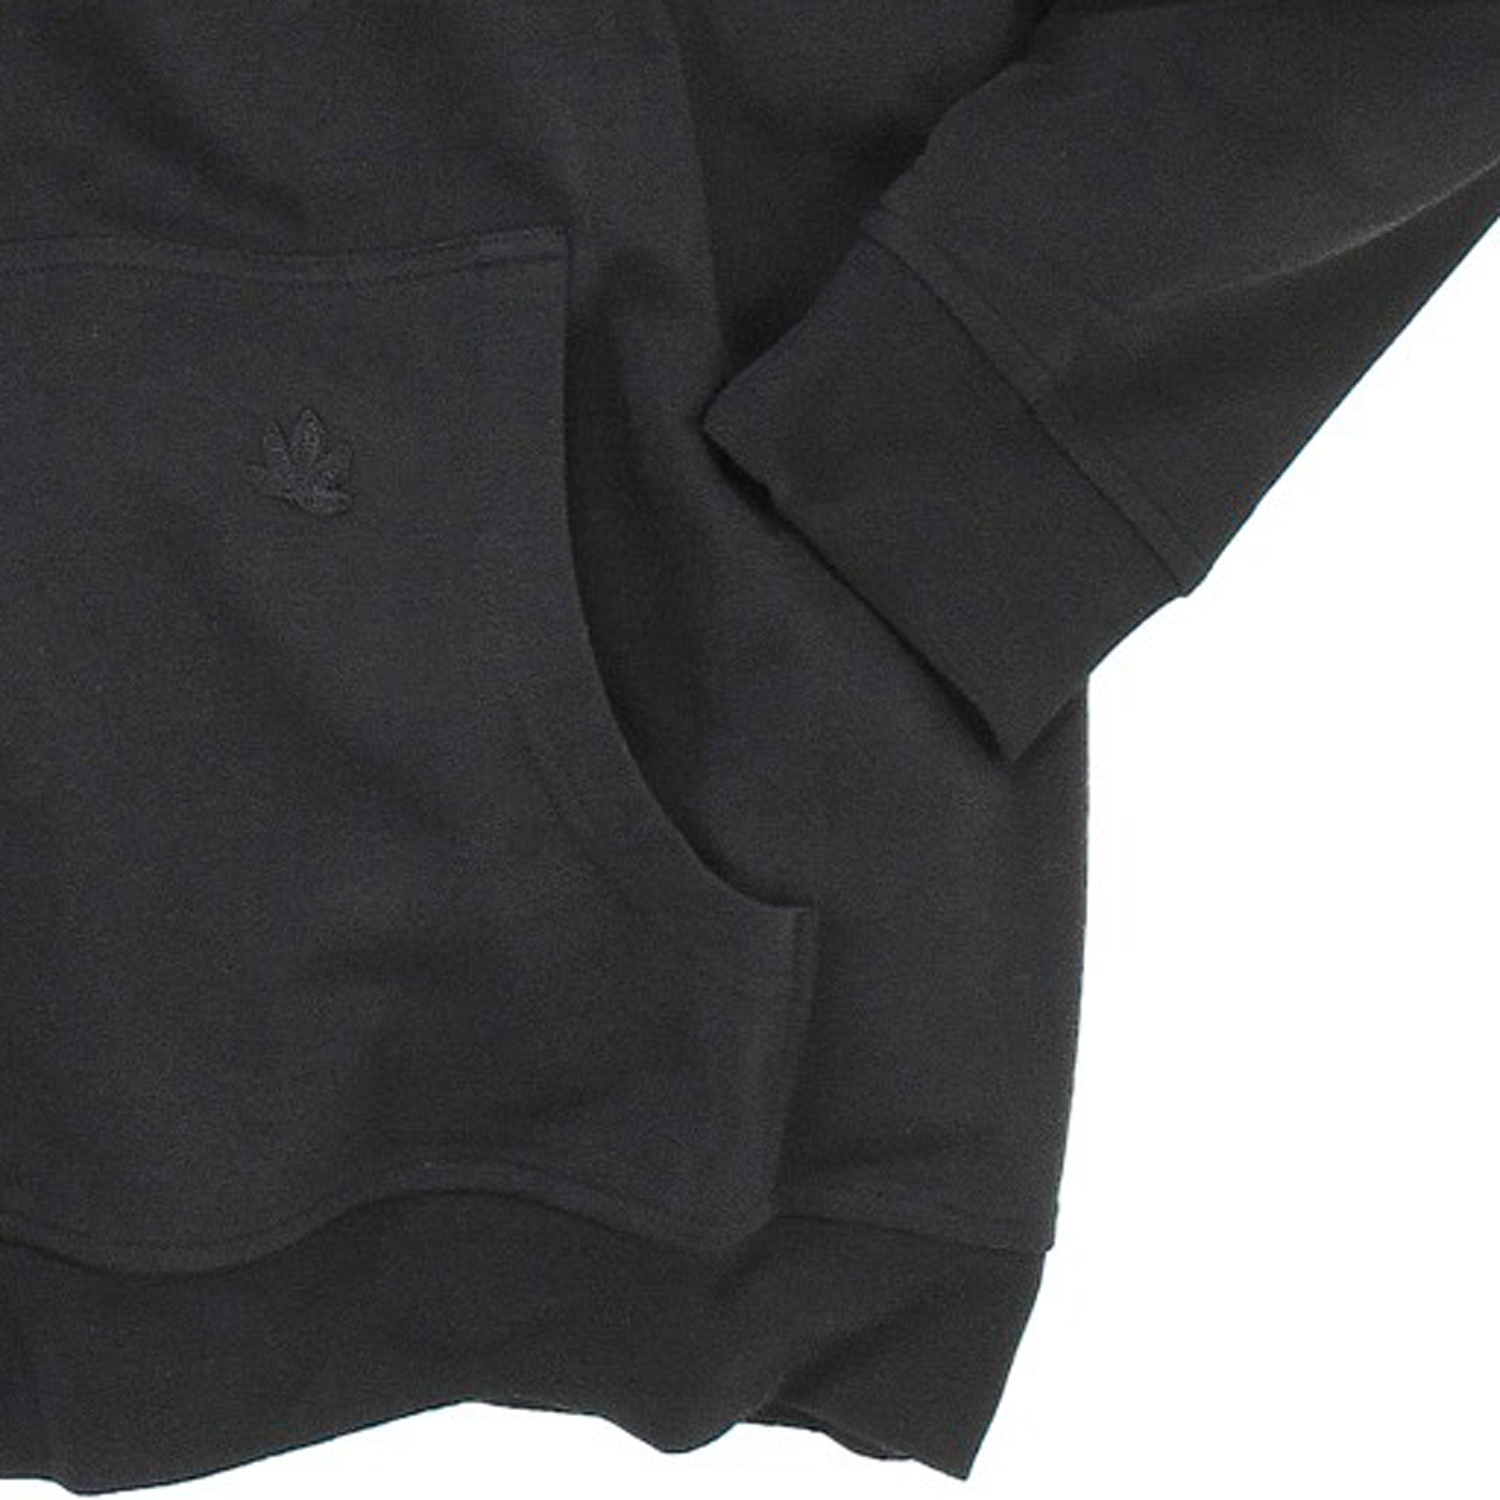 Detail Image to Black hooded sweat by Ahorn Sportswear in king sizes up to 10 XL